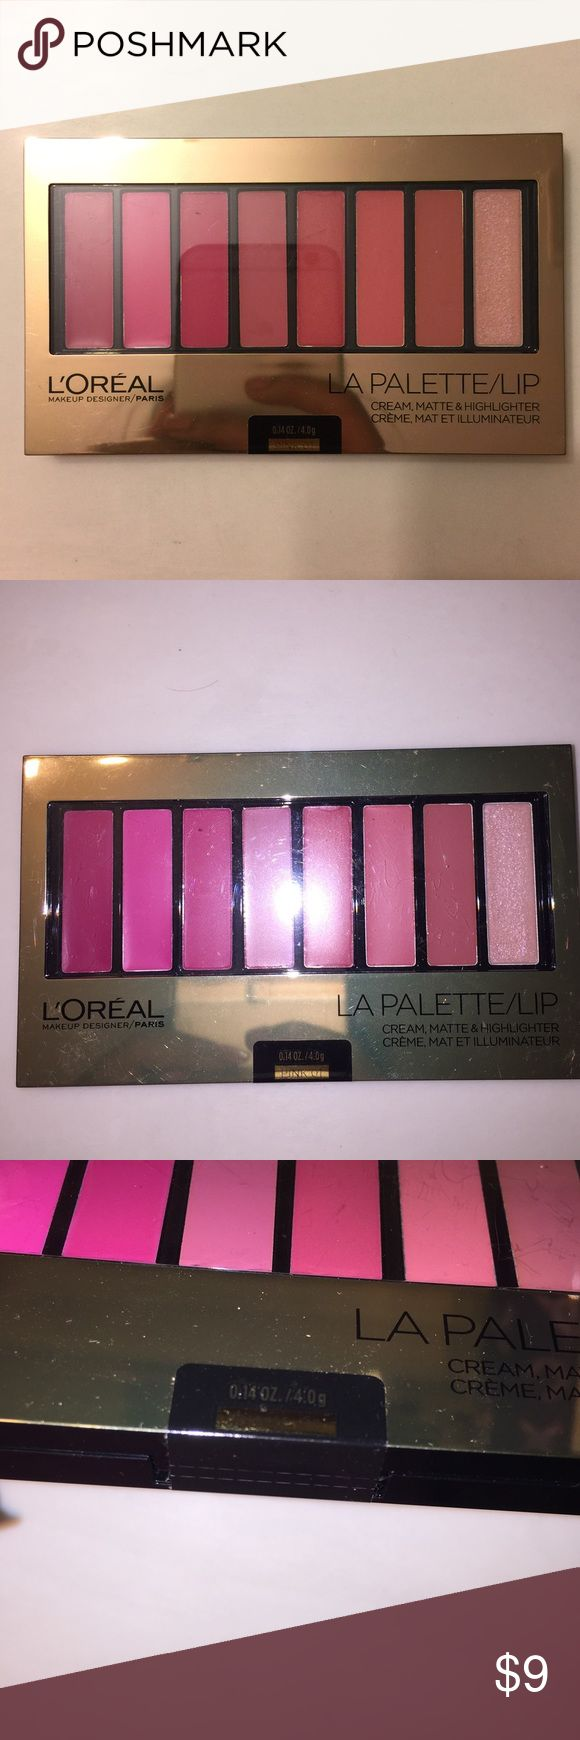 L'oréal Face/Lip Palette L'oréal Paris Palette in PINK 01, 8 beautiful creme, matte, and highlighter shades. NEVER OPENED, STILL SEALED CLOSED. L'Oreal Makeup Lipstick